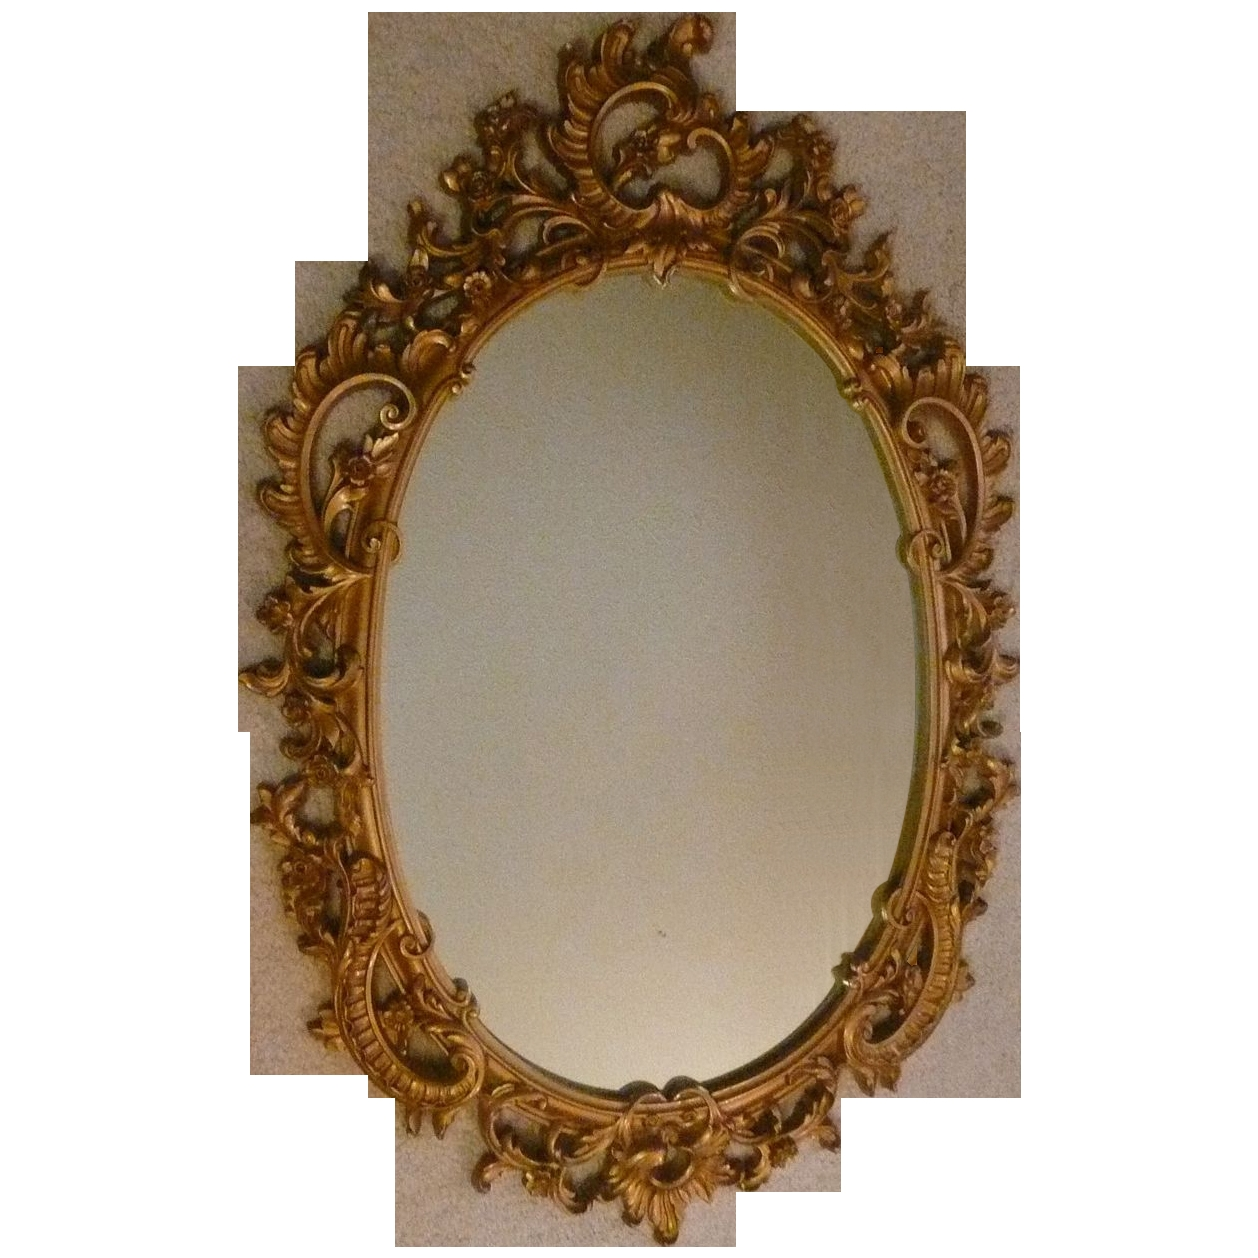 Syroco Wood Composite Mirror With Ornate Scroll From Artgate On With Ornamental Mirrors (Image 11 of 15)